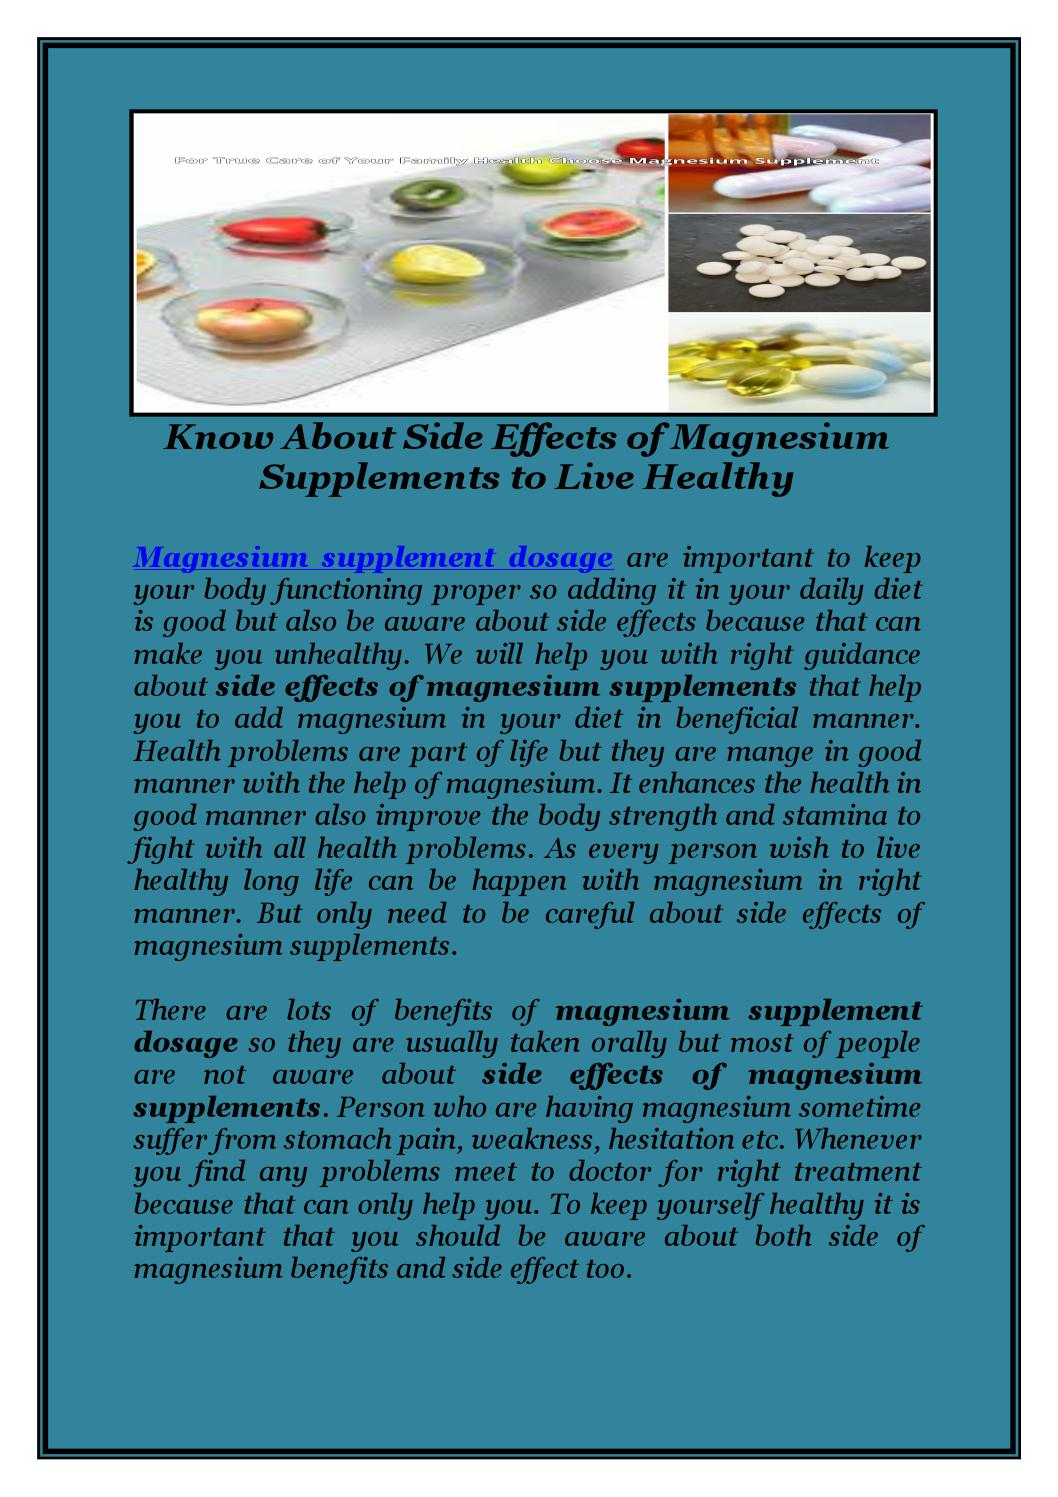 Know about side effects of magnesium supplements to live ...